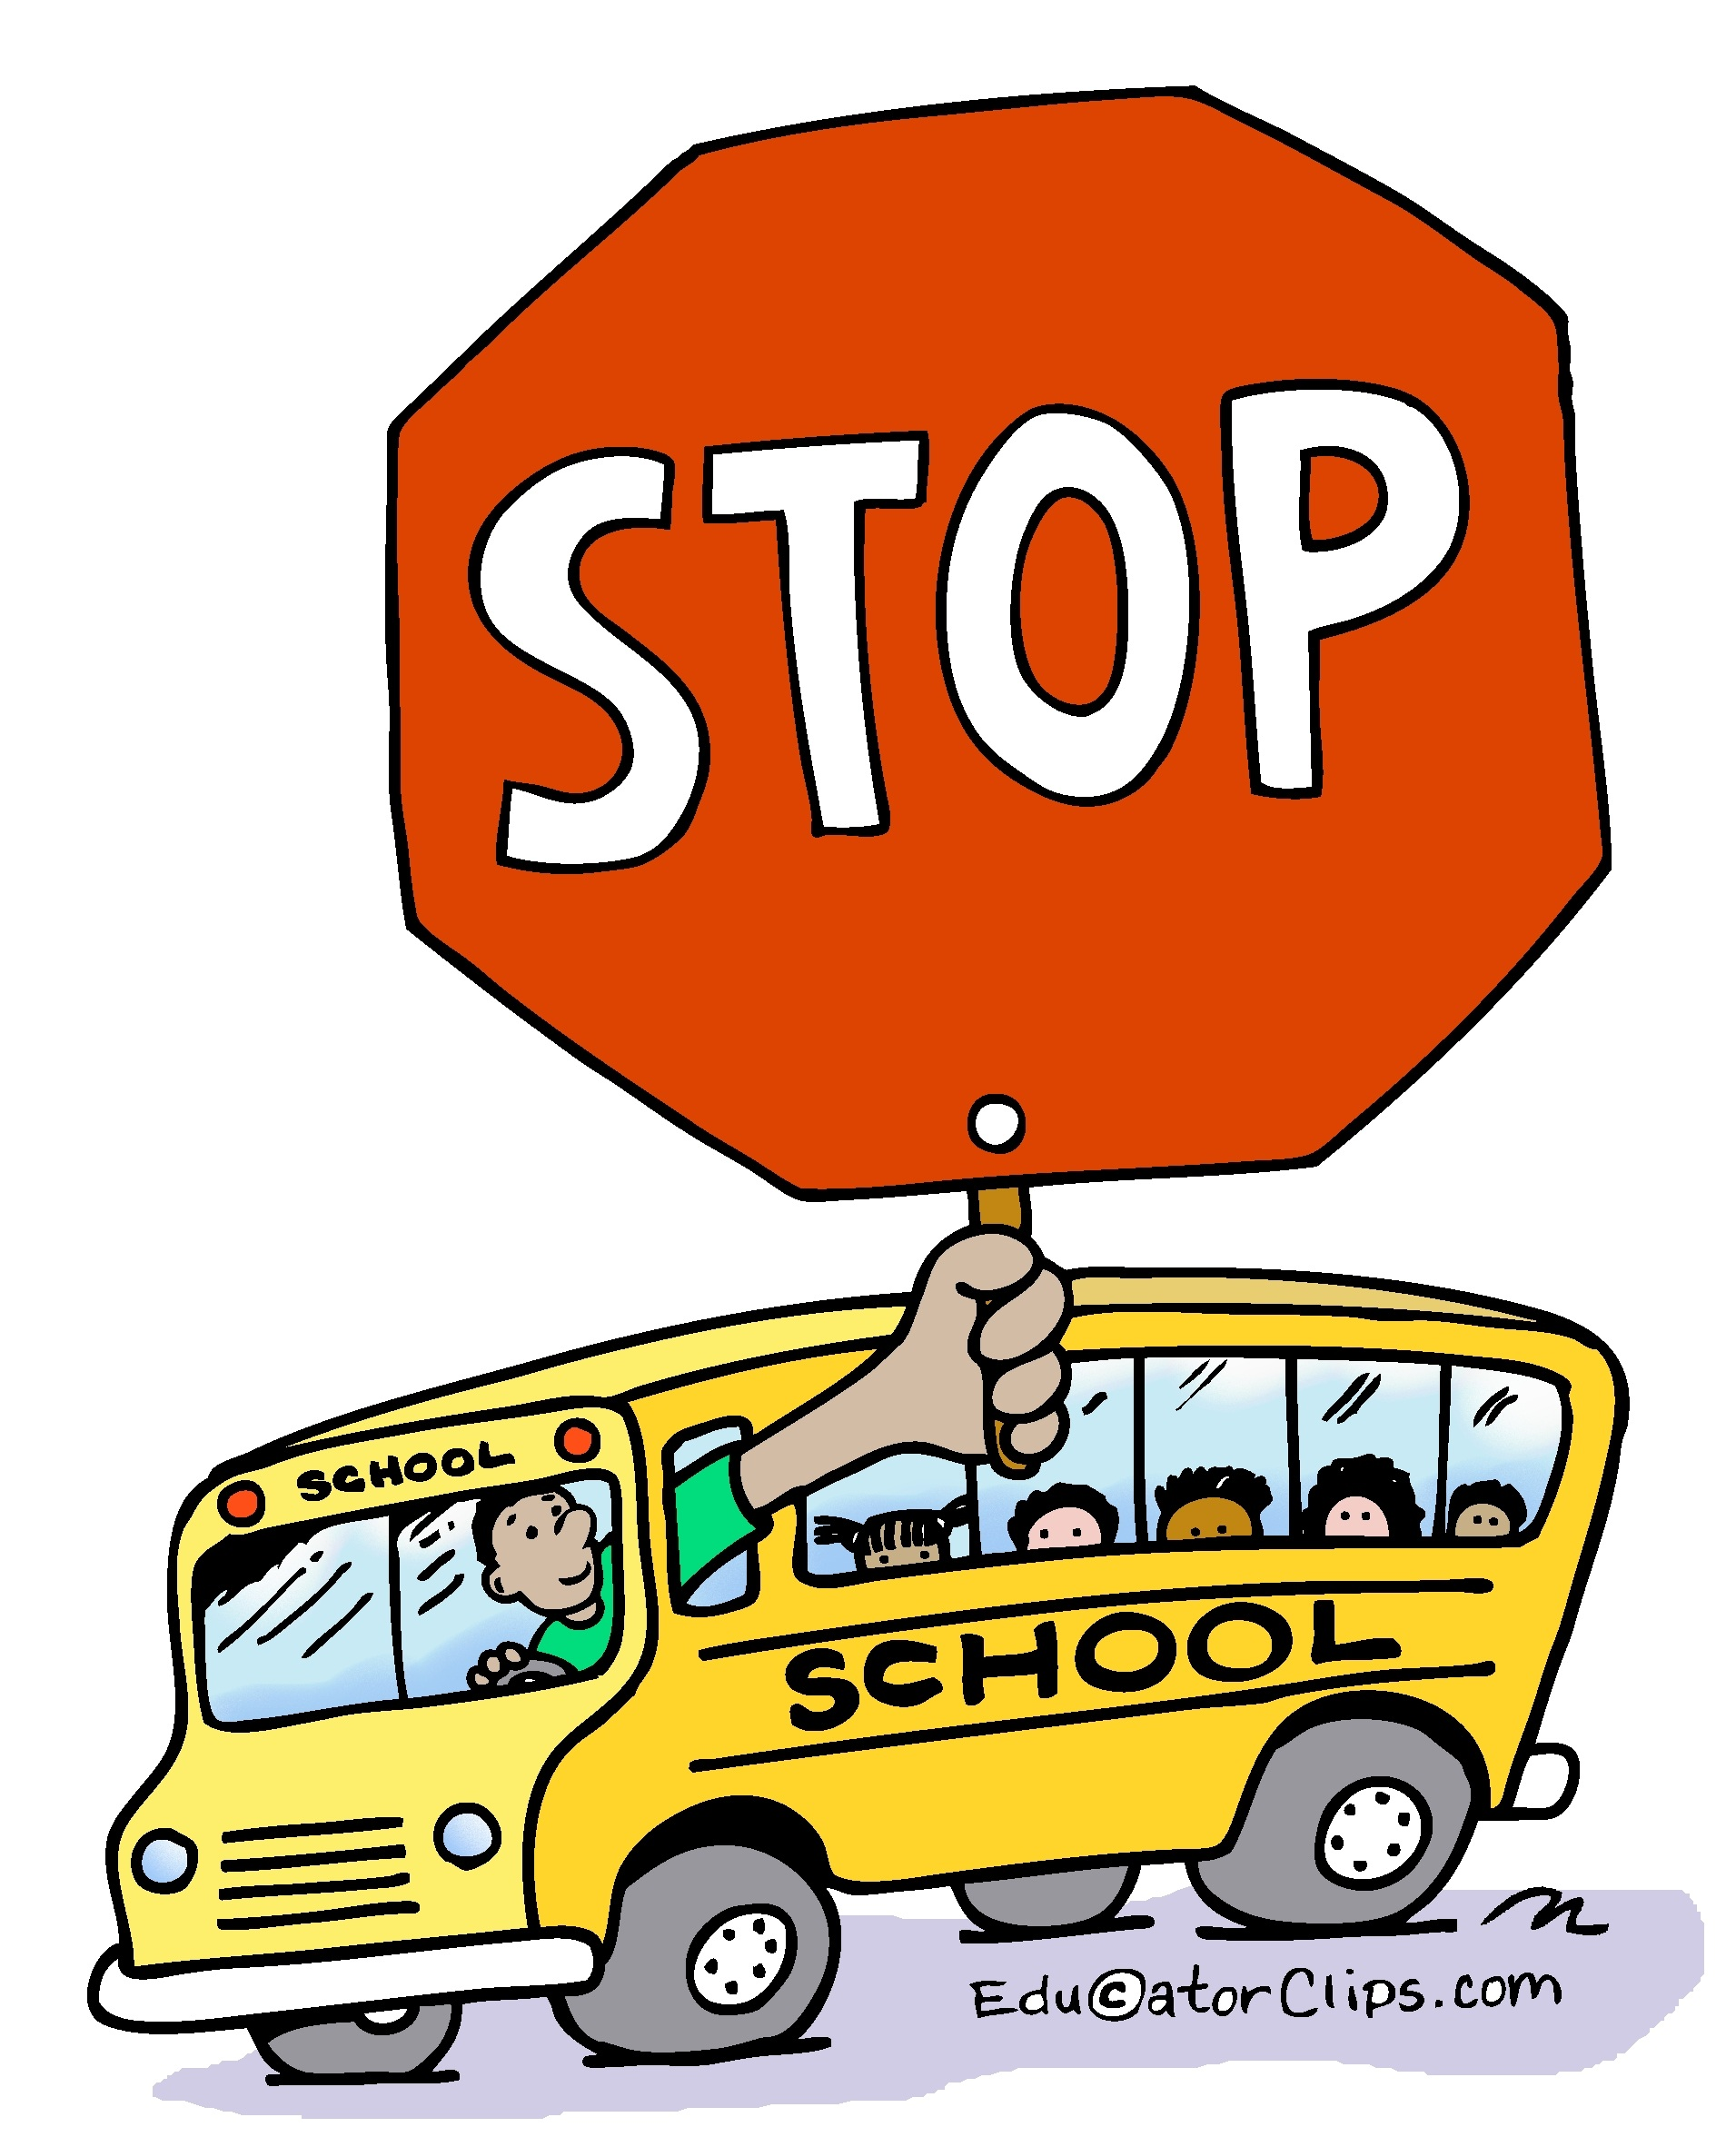 School bus stop clipart 6 » Clipart Station.